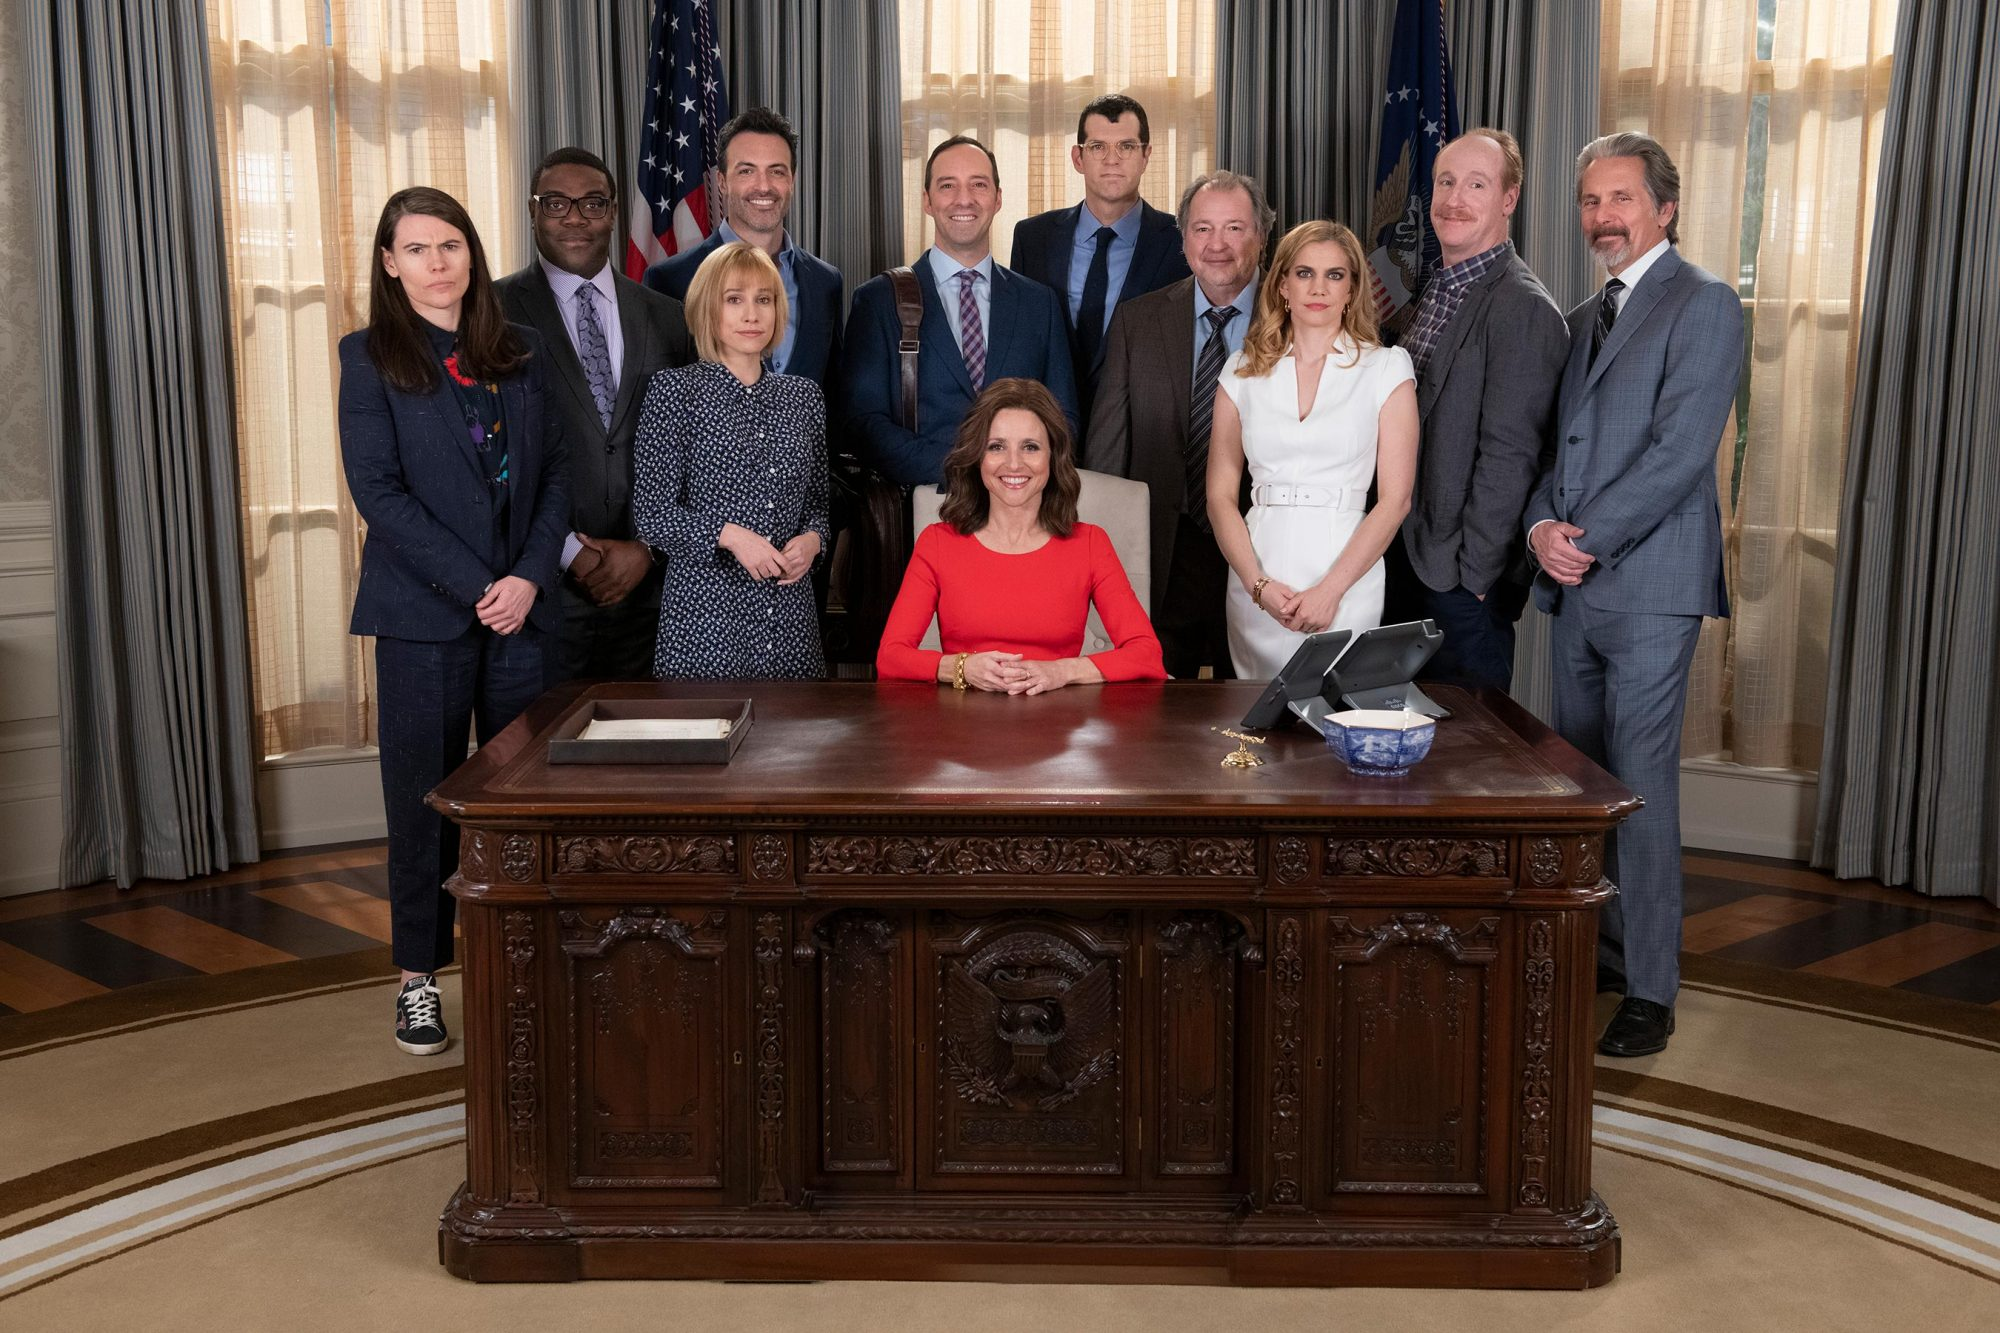 The cast of HBO's Veep